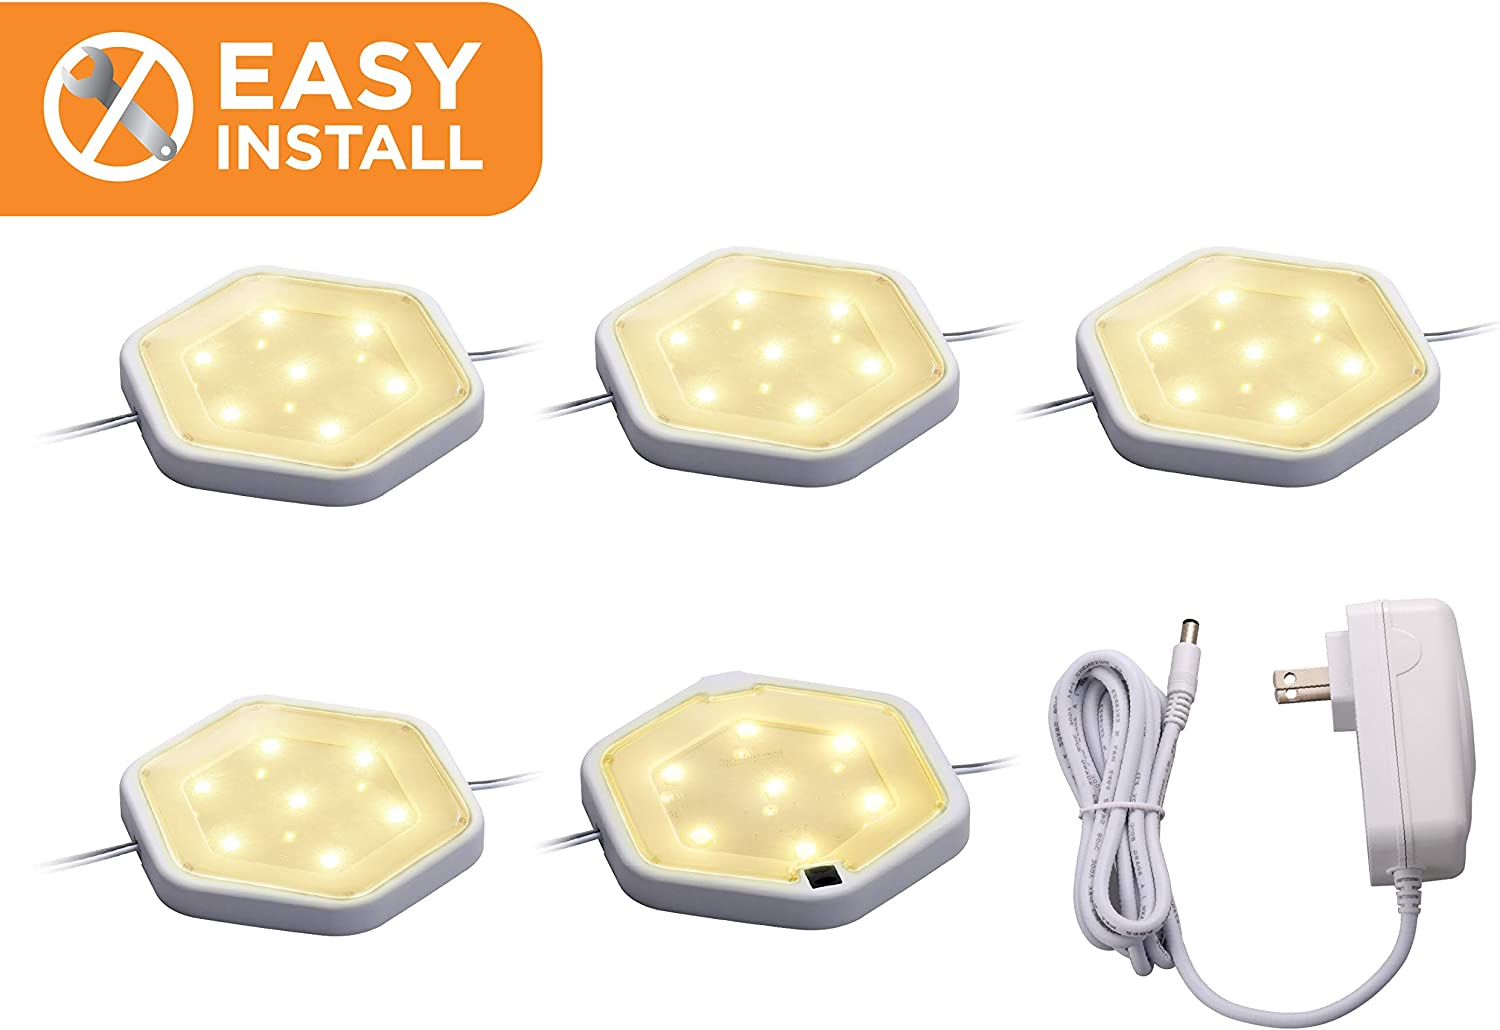 Warm White Dimmable Tool-Free Install 3-Pack BLACK+DECKER LEDUC-PUCK-3WK LED Puck Light Kit